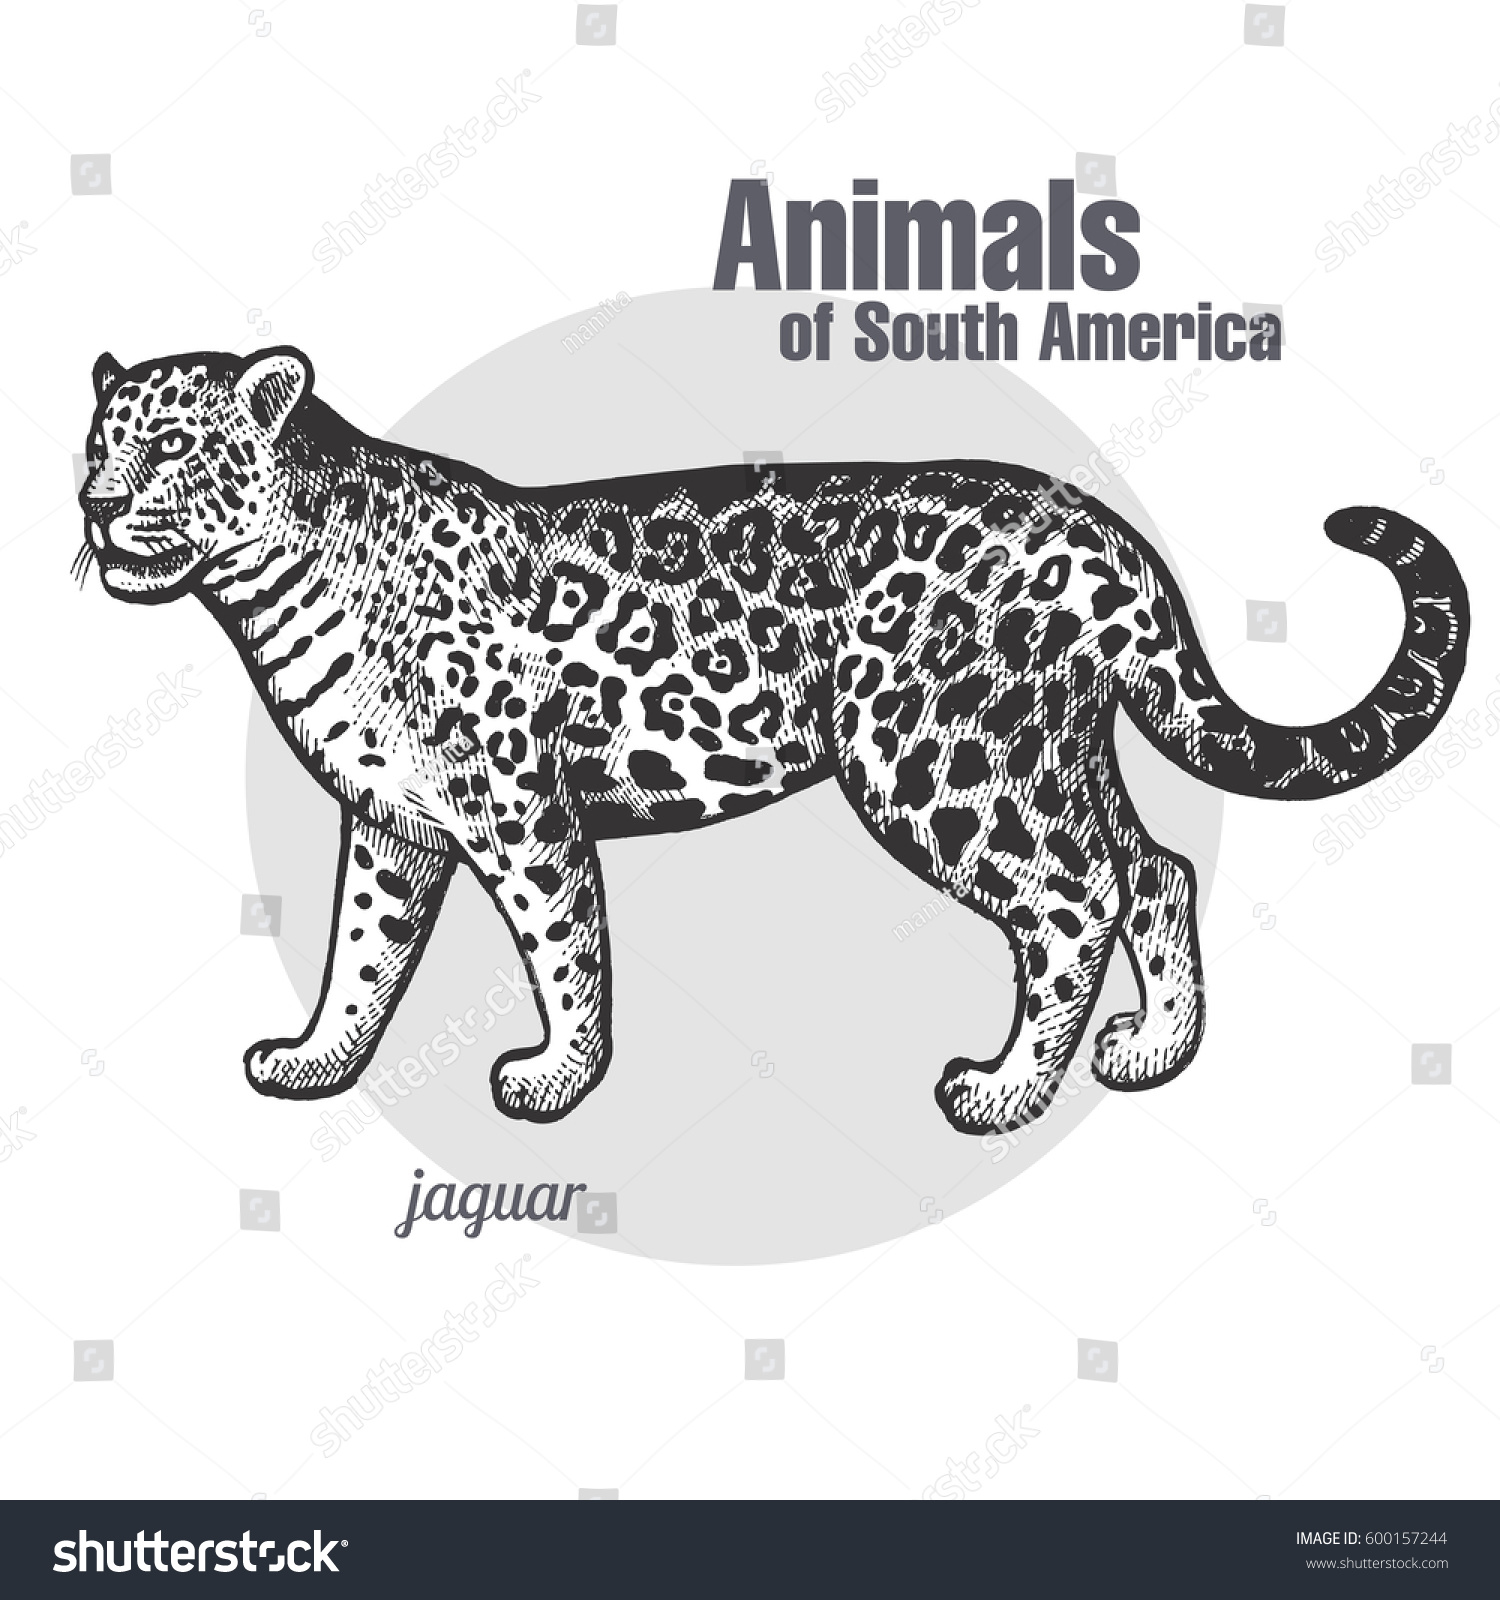 jaguar hand drawing animals of south america series vintage engraving style vector illustration